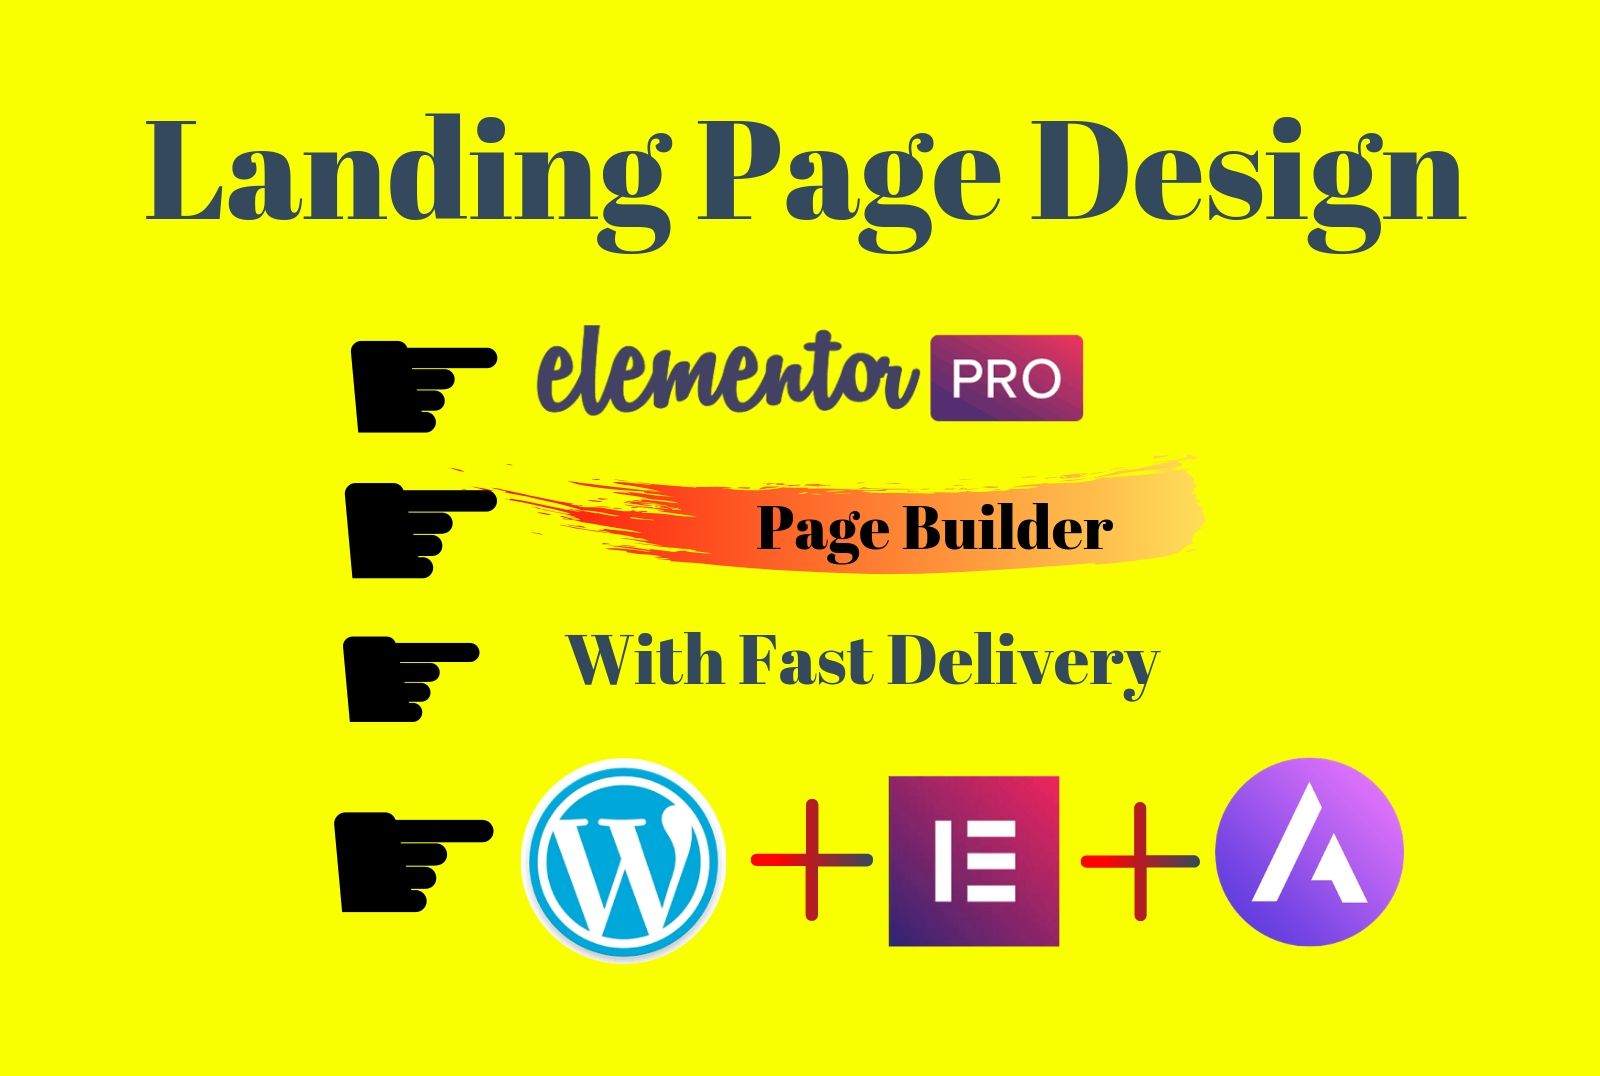 Install elementor pro and create or clone landing page or wordpress website